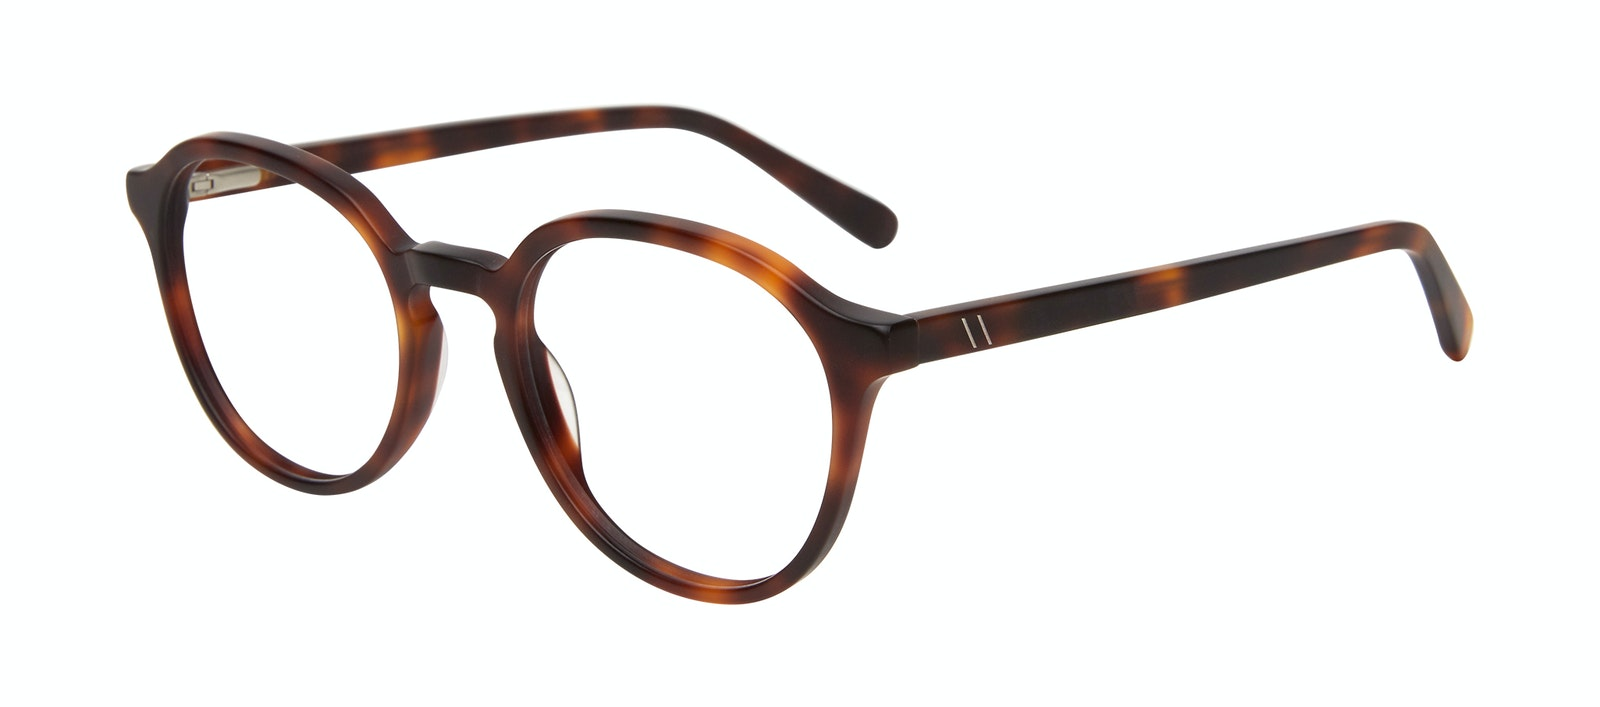 Affordable Fashion Glasses Round Eyeglasses Men Ansel Matte Tortoise Tilt